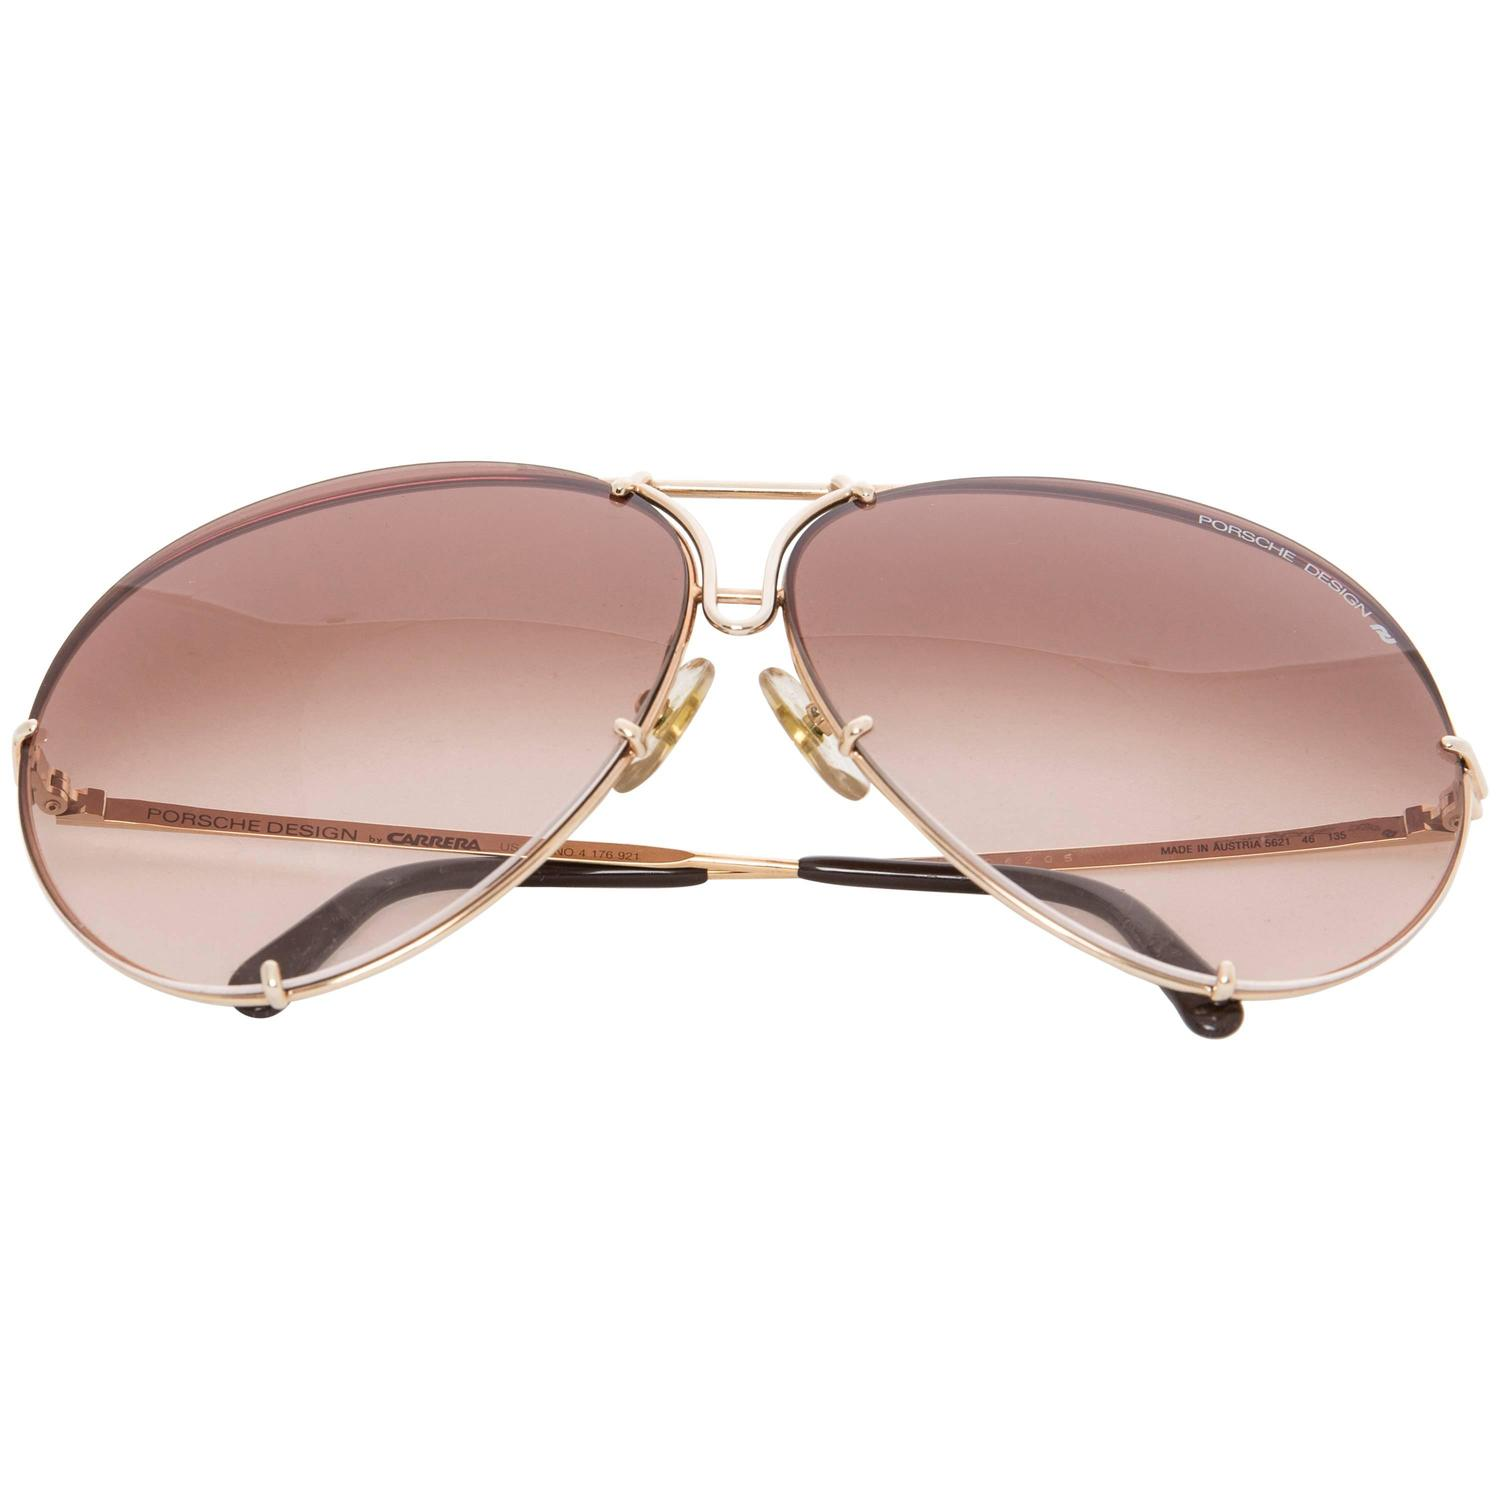 Porsche By Carrera 5621 Aviator Sunglasses With Case And